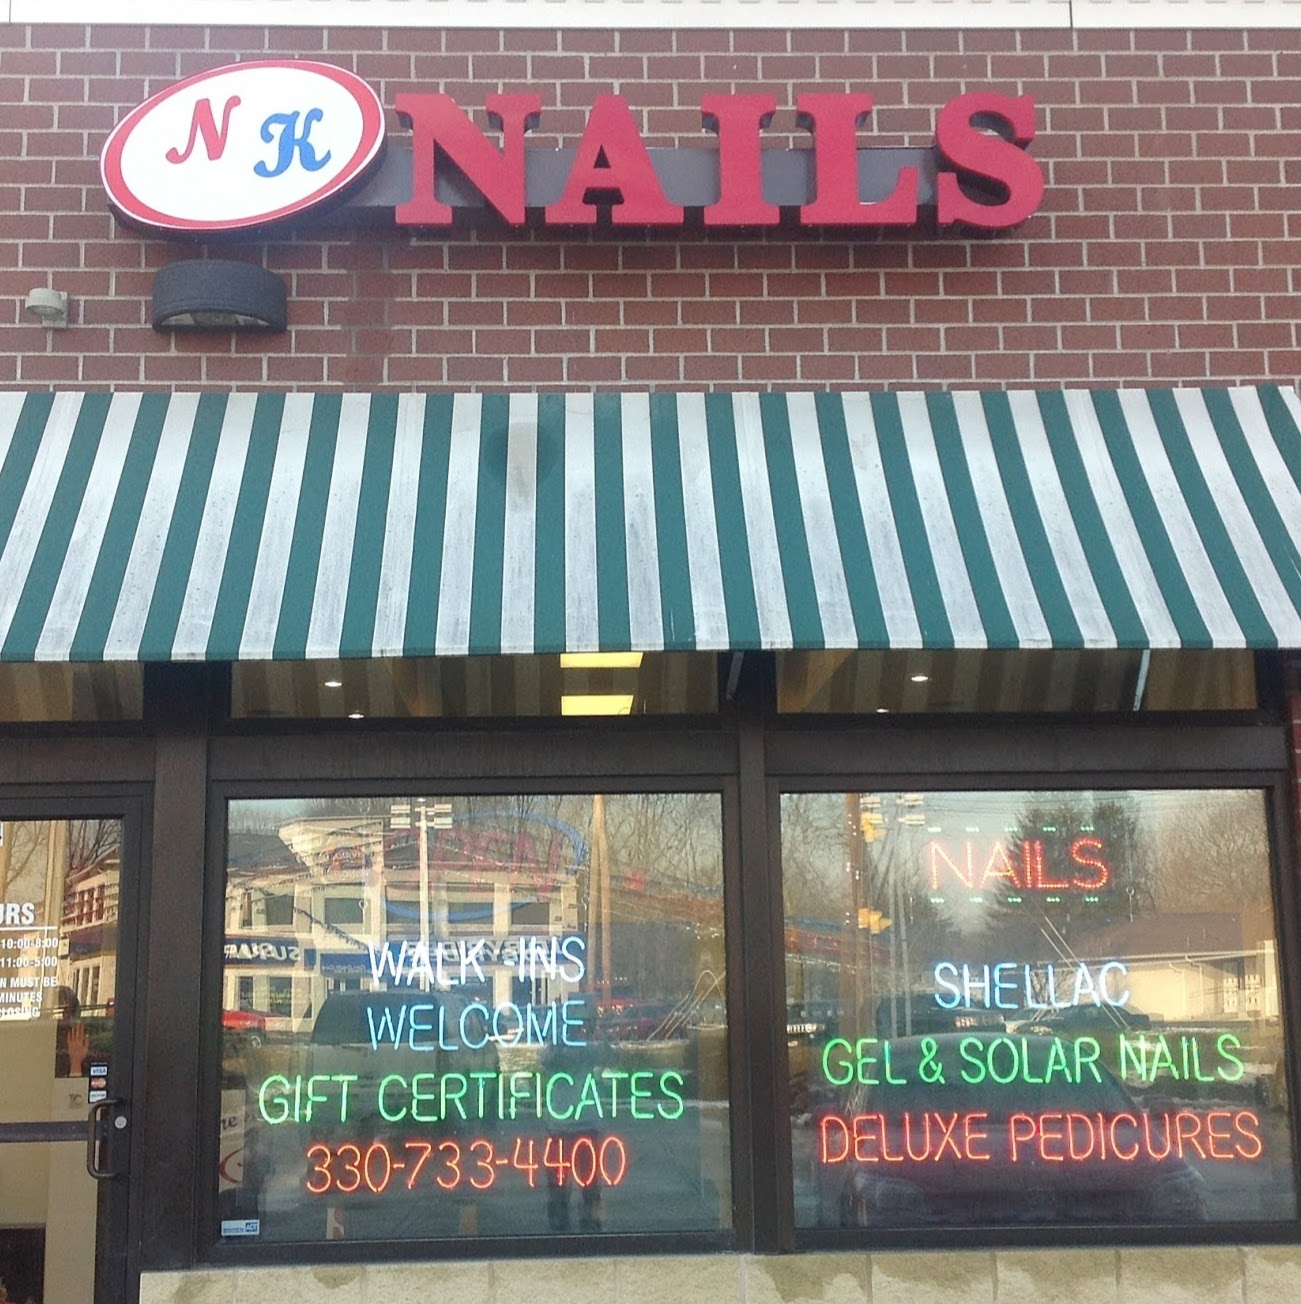 NK Nails, 764 Canton Road, Akron, Reviews and Appointments - NailsNow